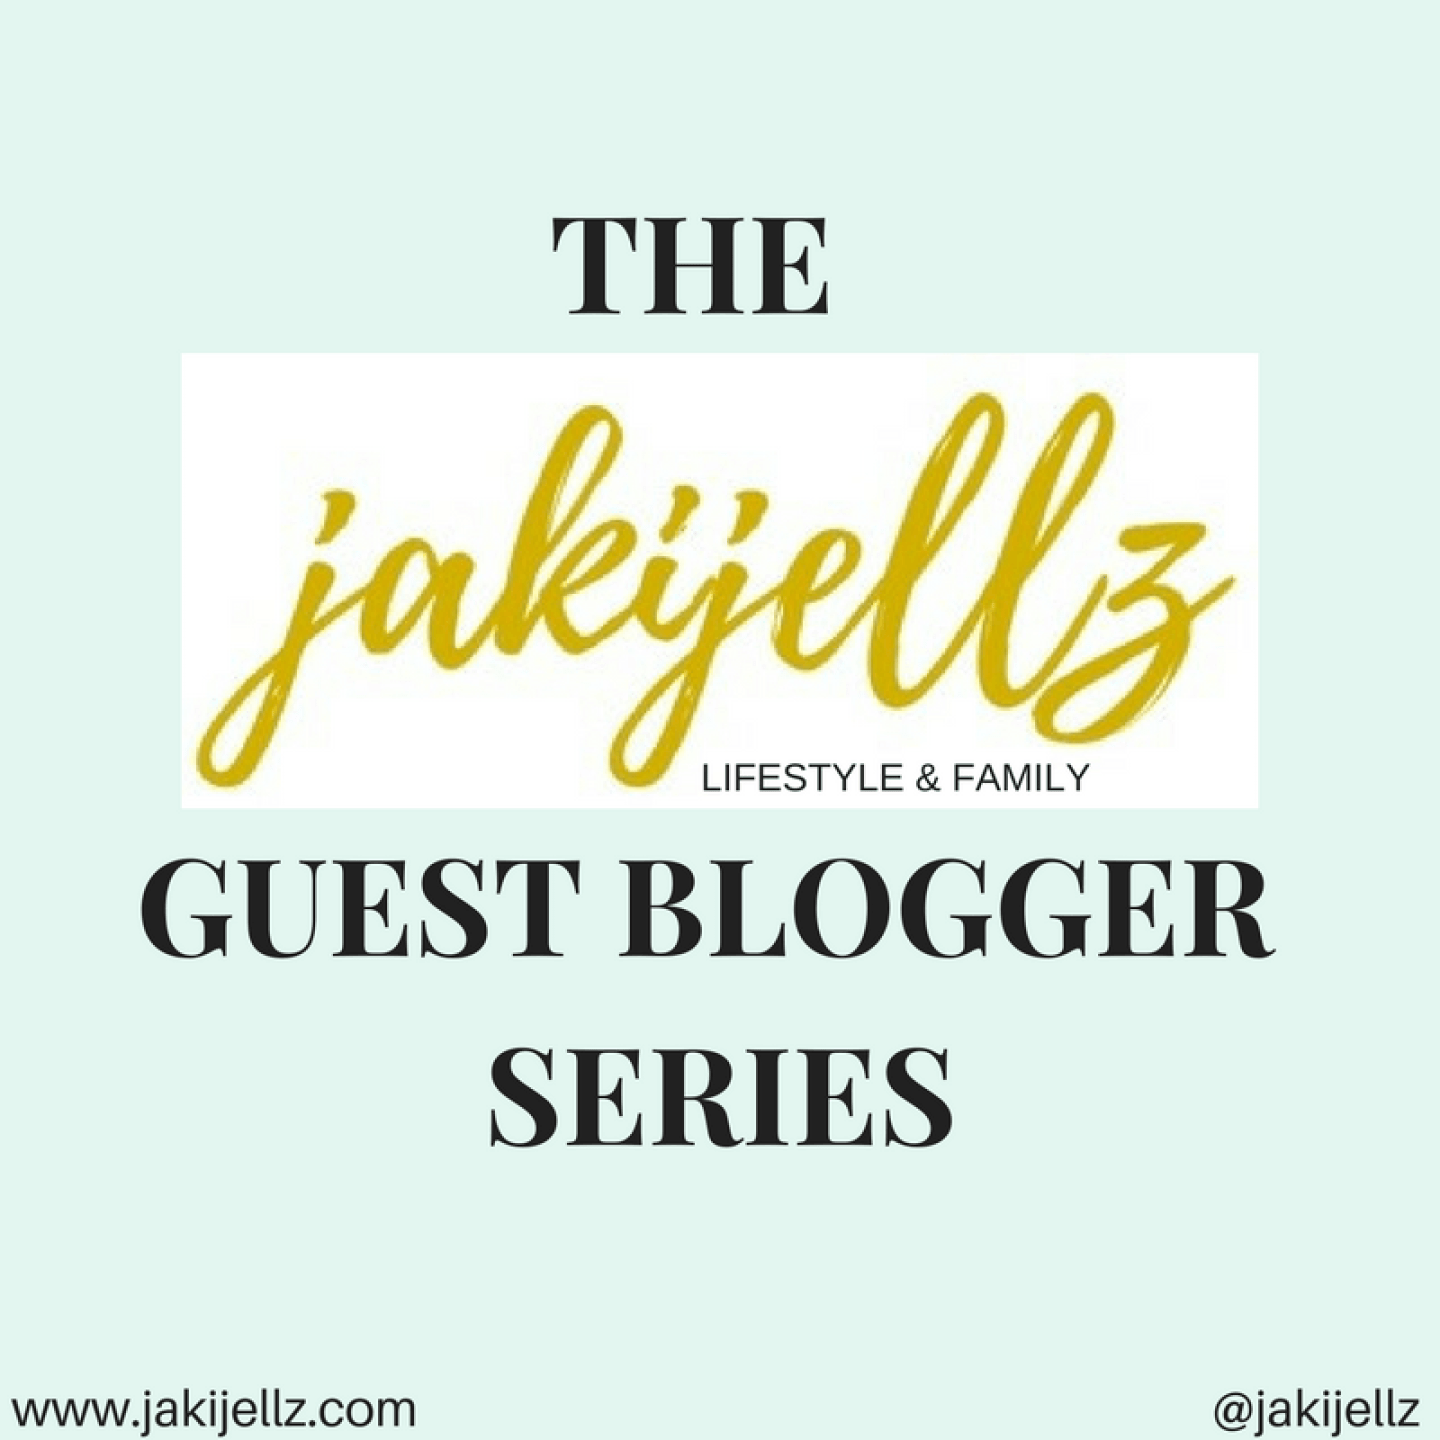 JakiJellz Guest Blogger Series